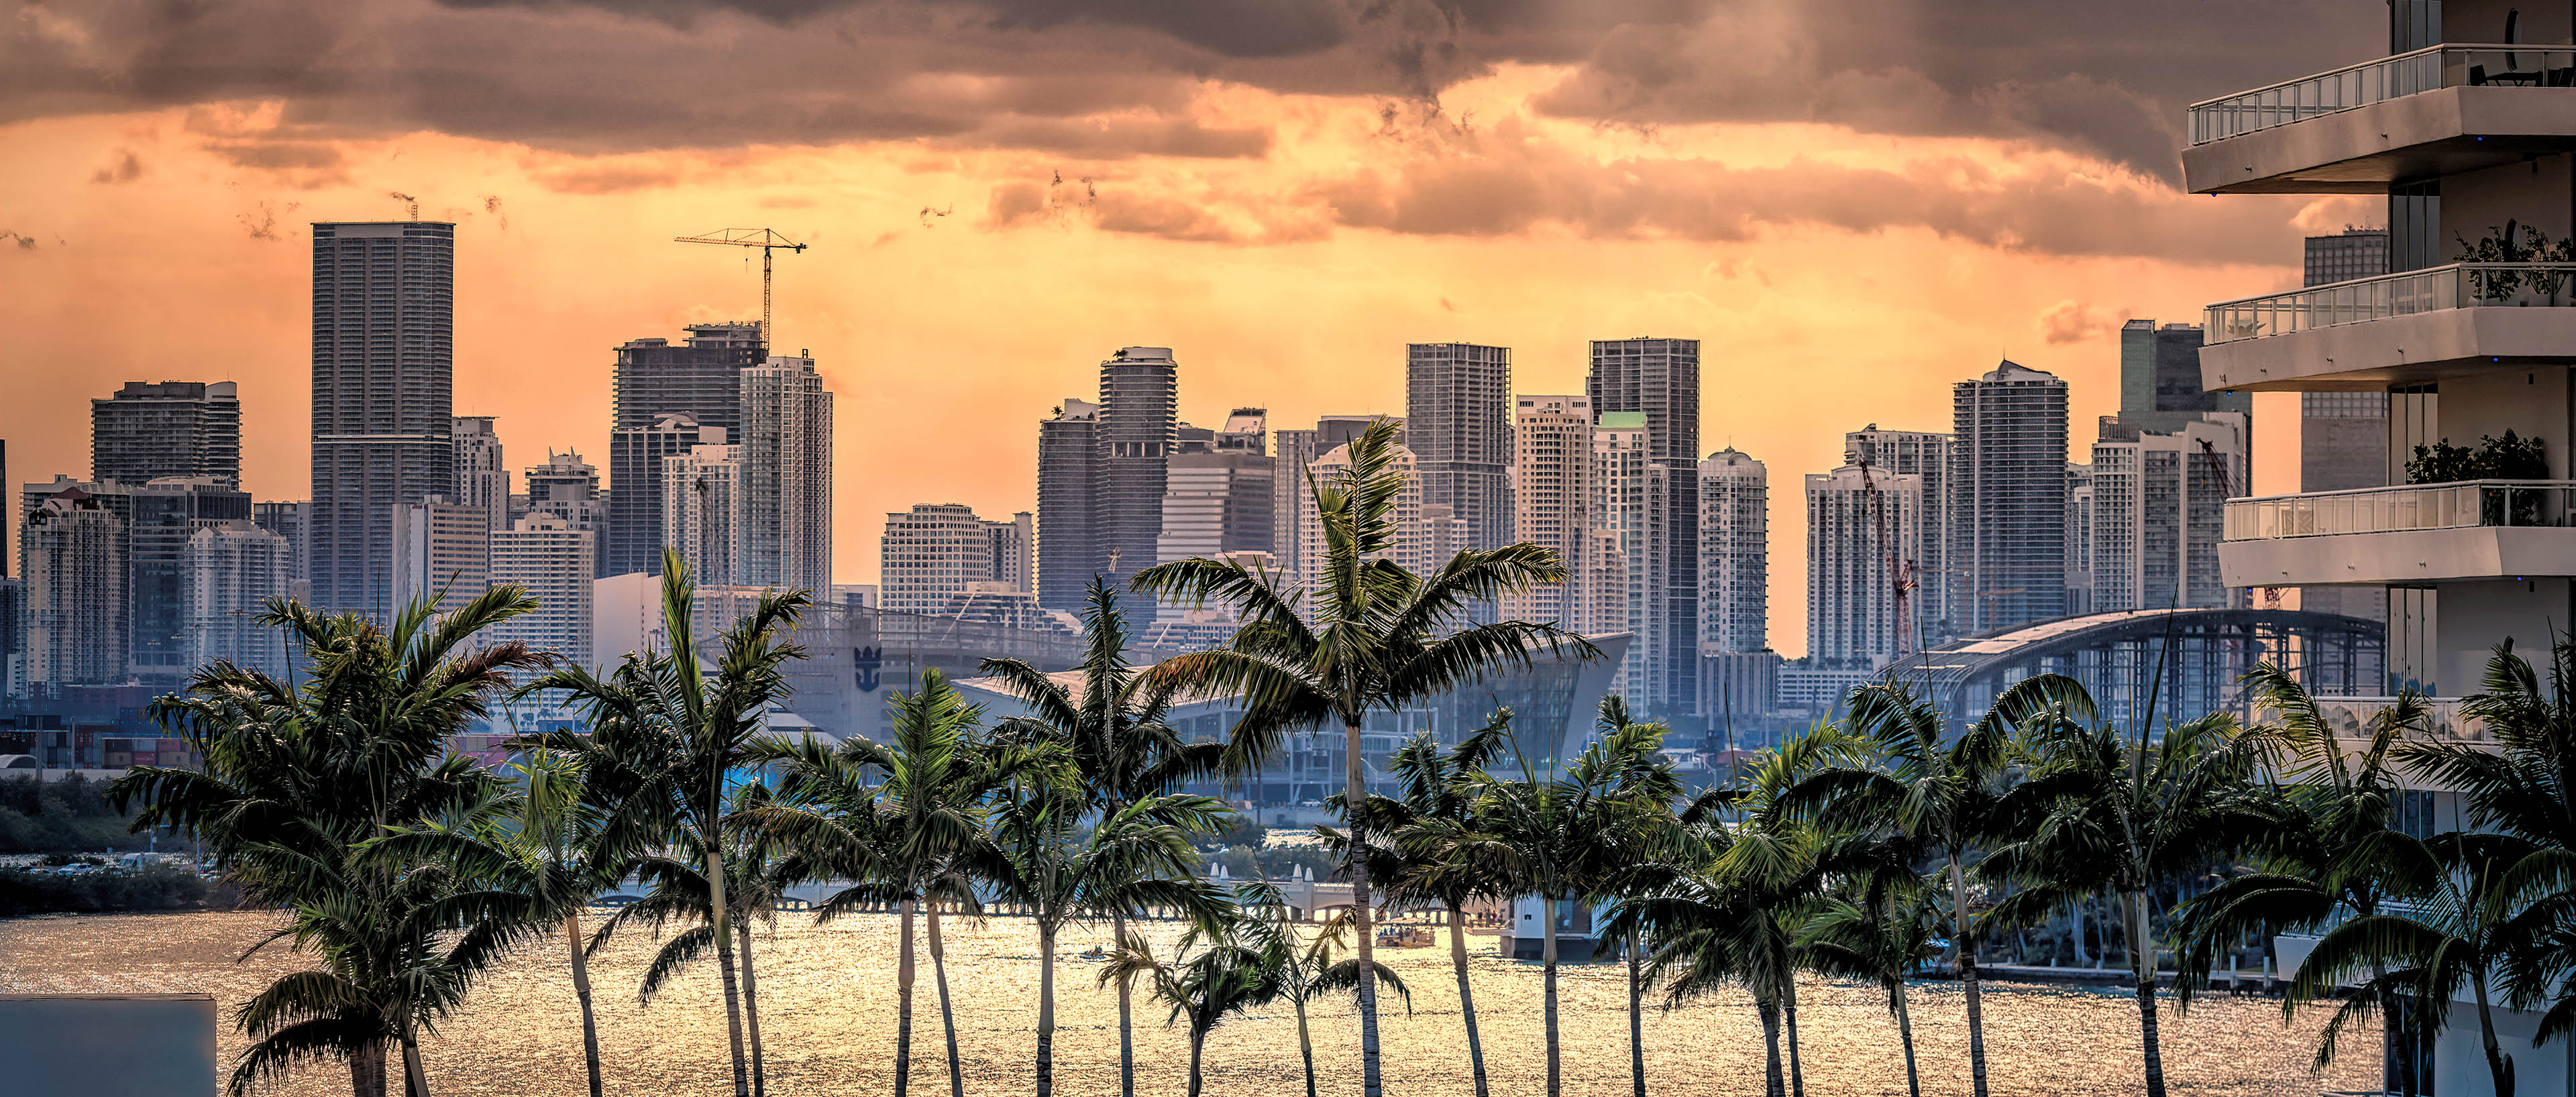 Sunset with crepuscular rays over downtown, Miami